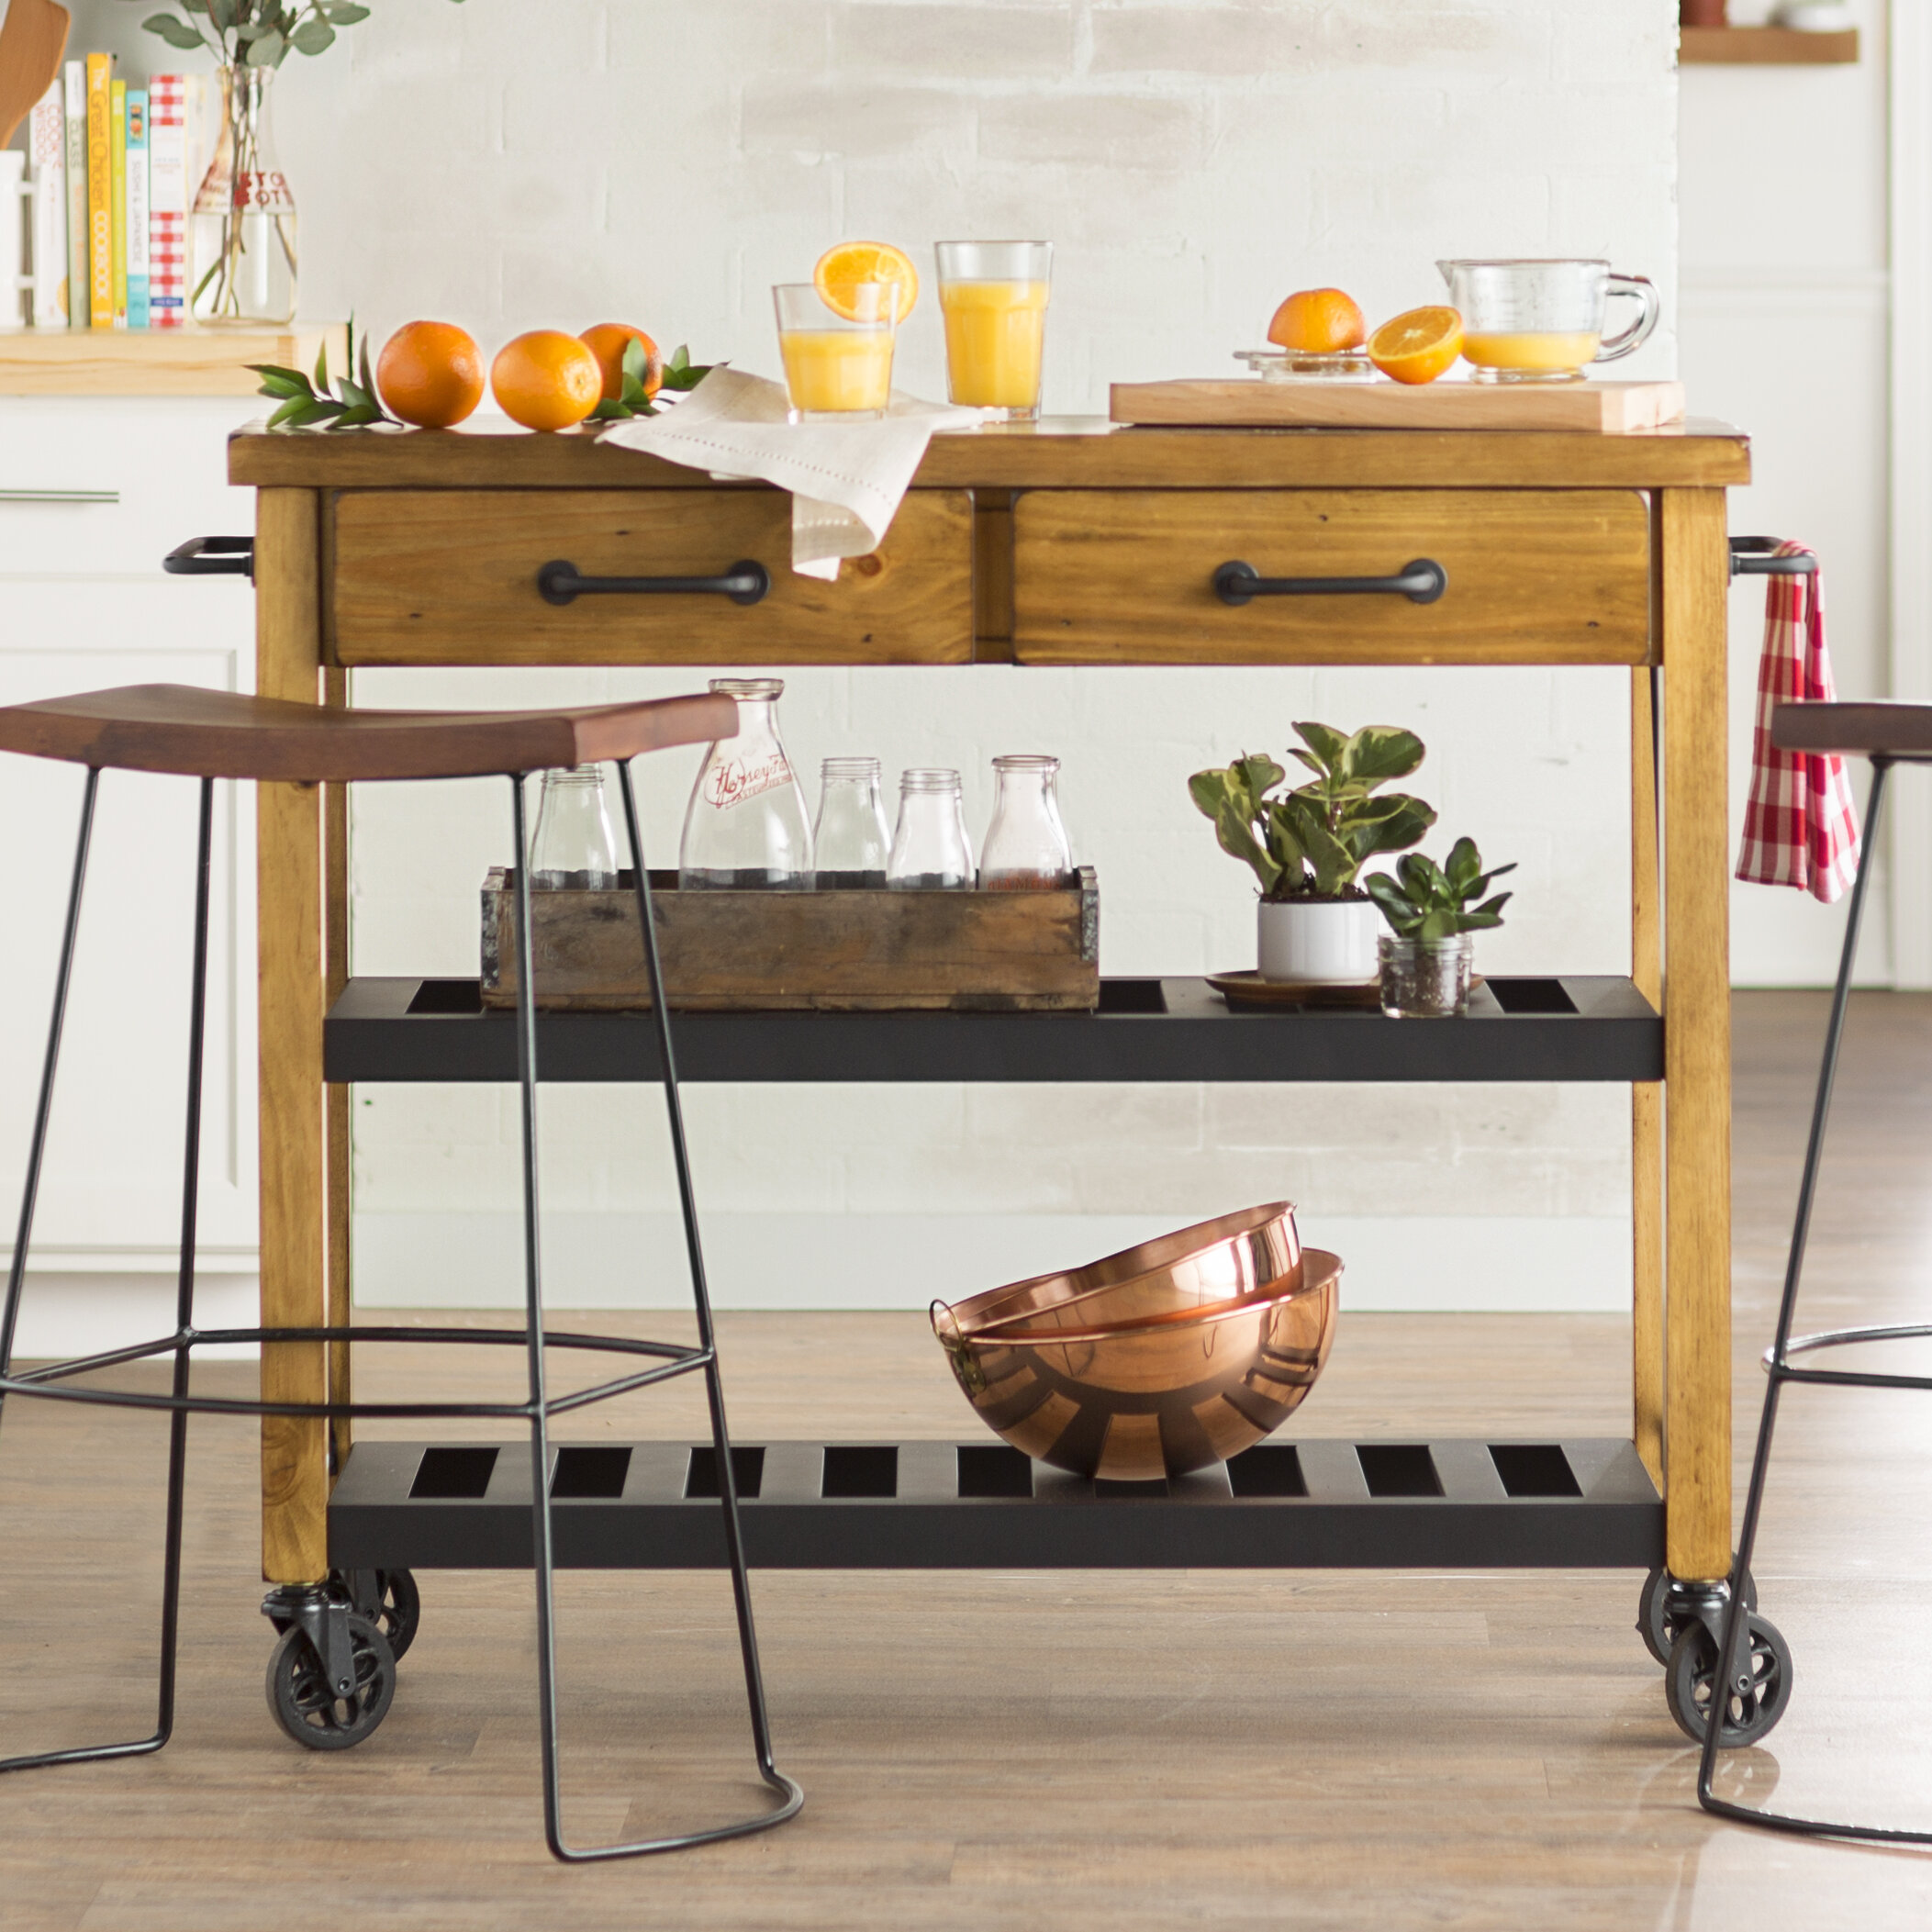 Kitchen Islands & Carts You ll Love